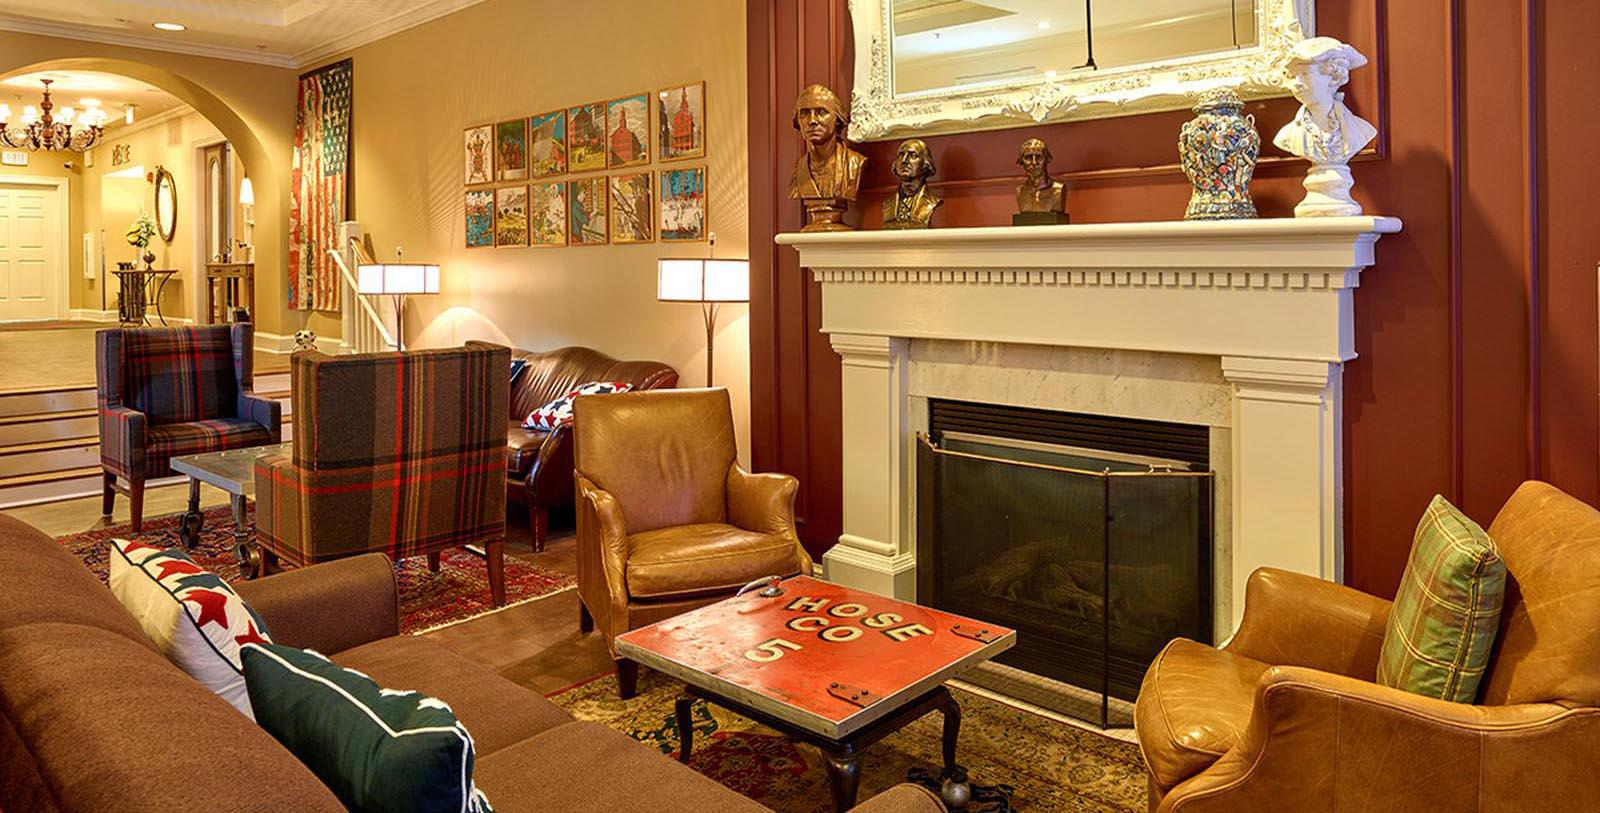 Image of Seating Area with Fireplace The Kendall Hotel, 1894, Member of Historic Hotels of America, in Cambridge, Massachusetts, Discover